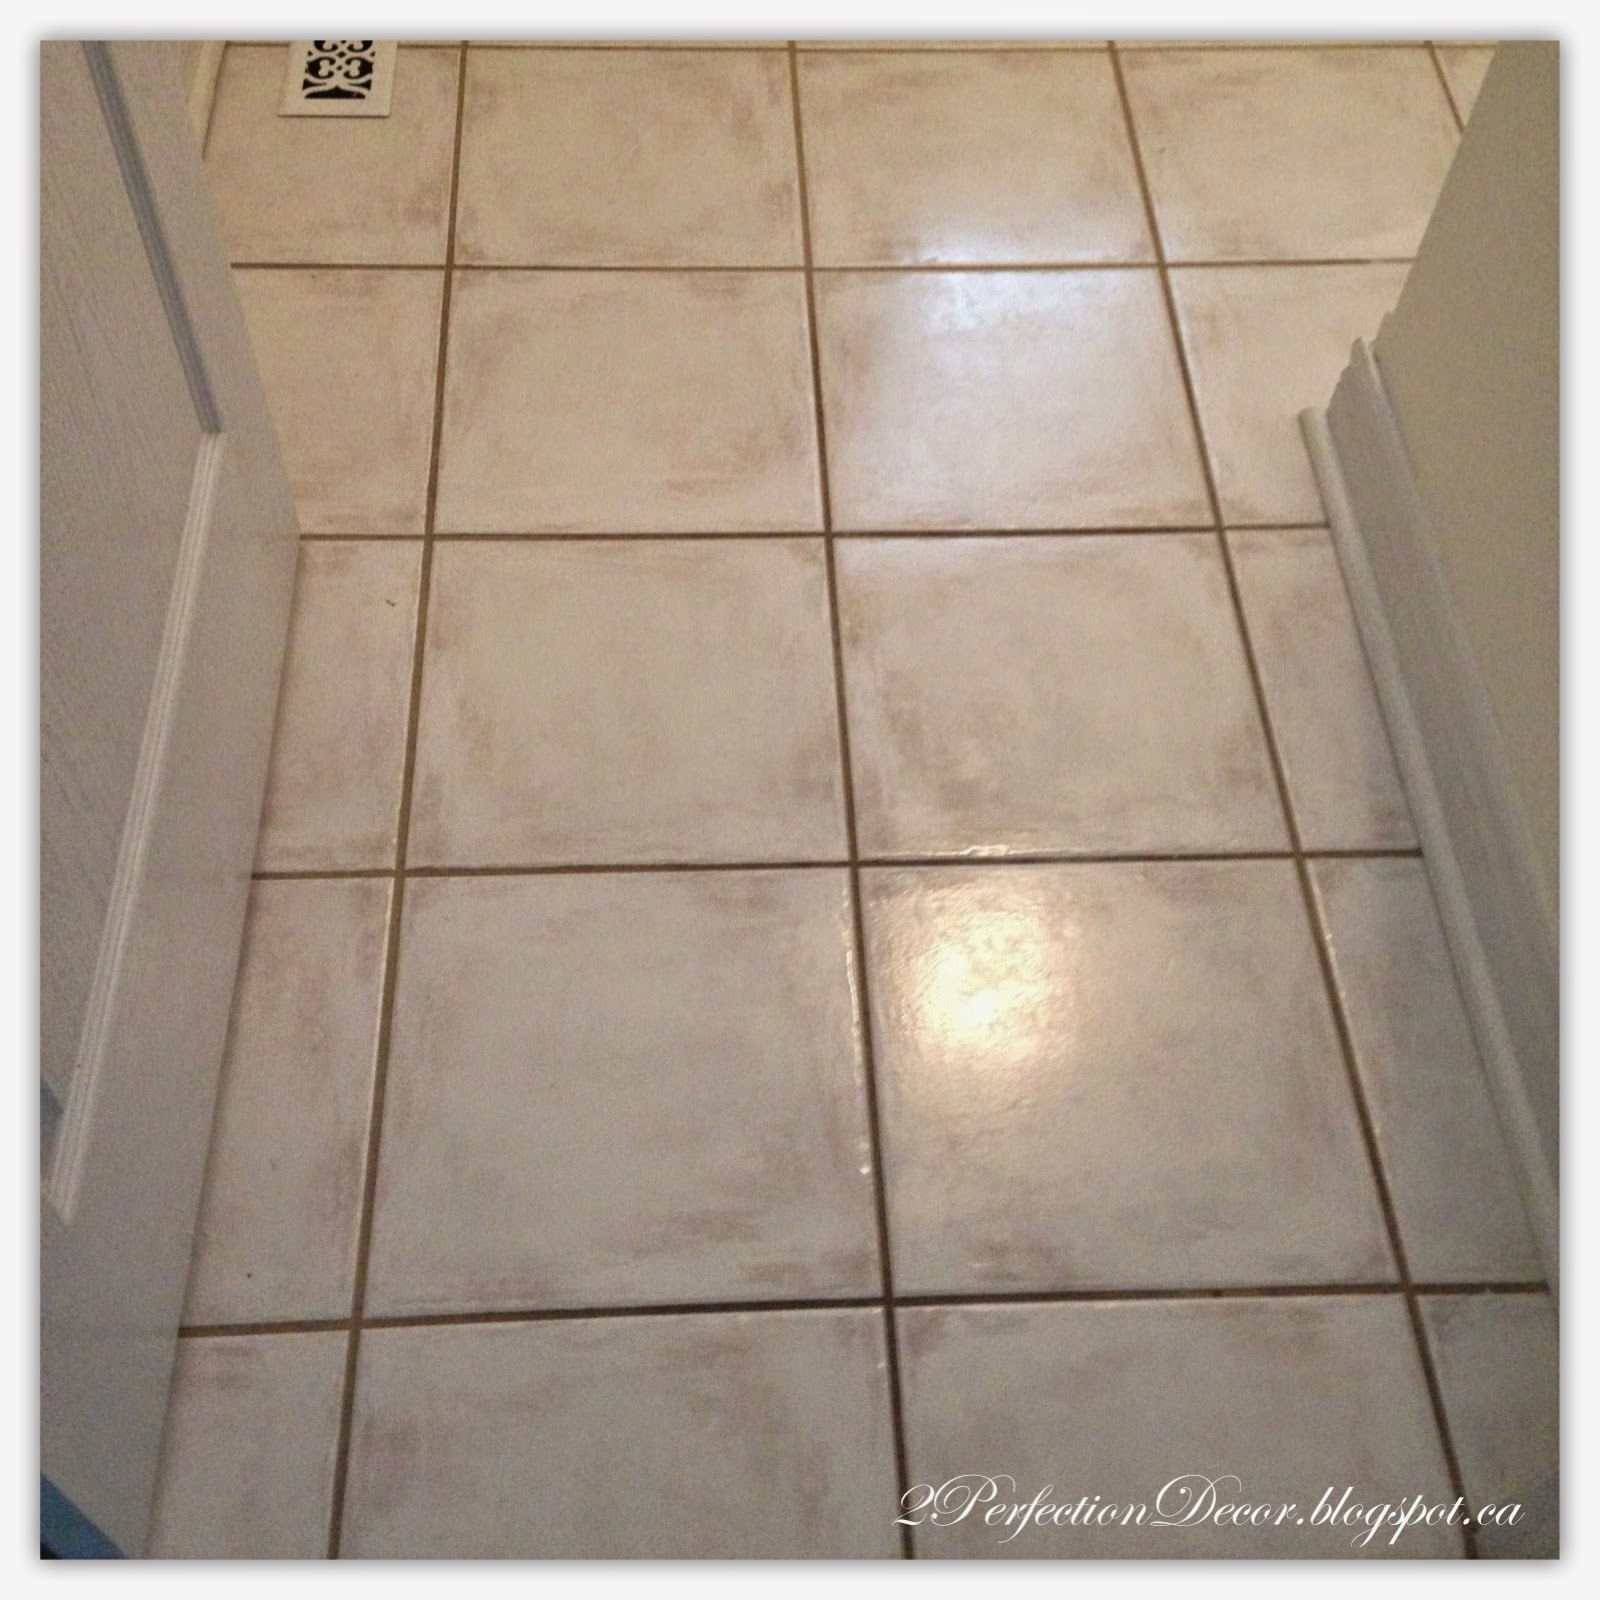 Floor Tile Paint Yes You Can Paint Floor Tiles Here S: 2Perfection Decor: How To Paint Dark Grout 'White